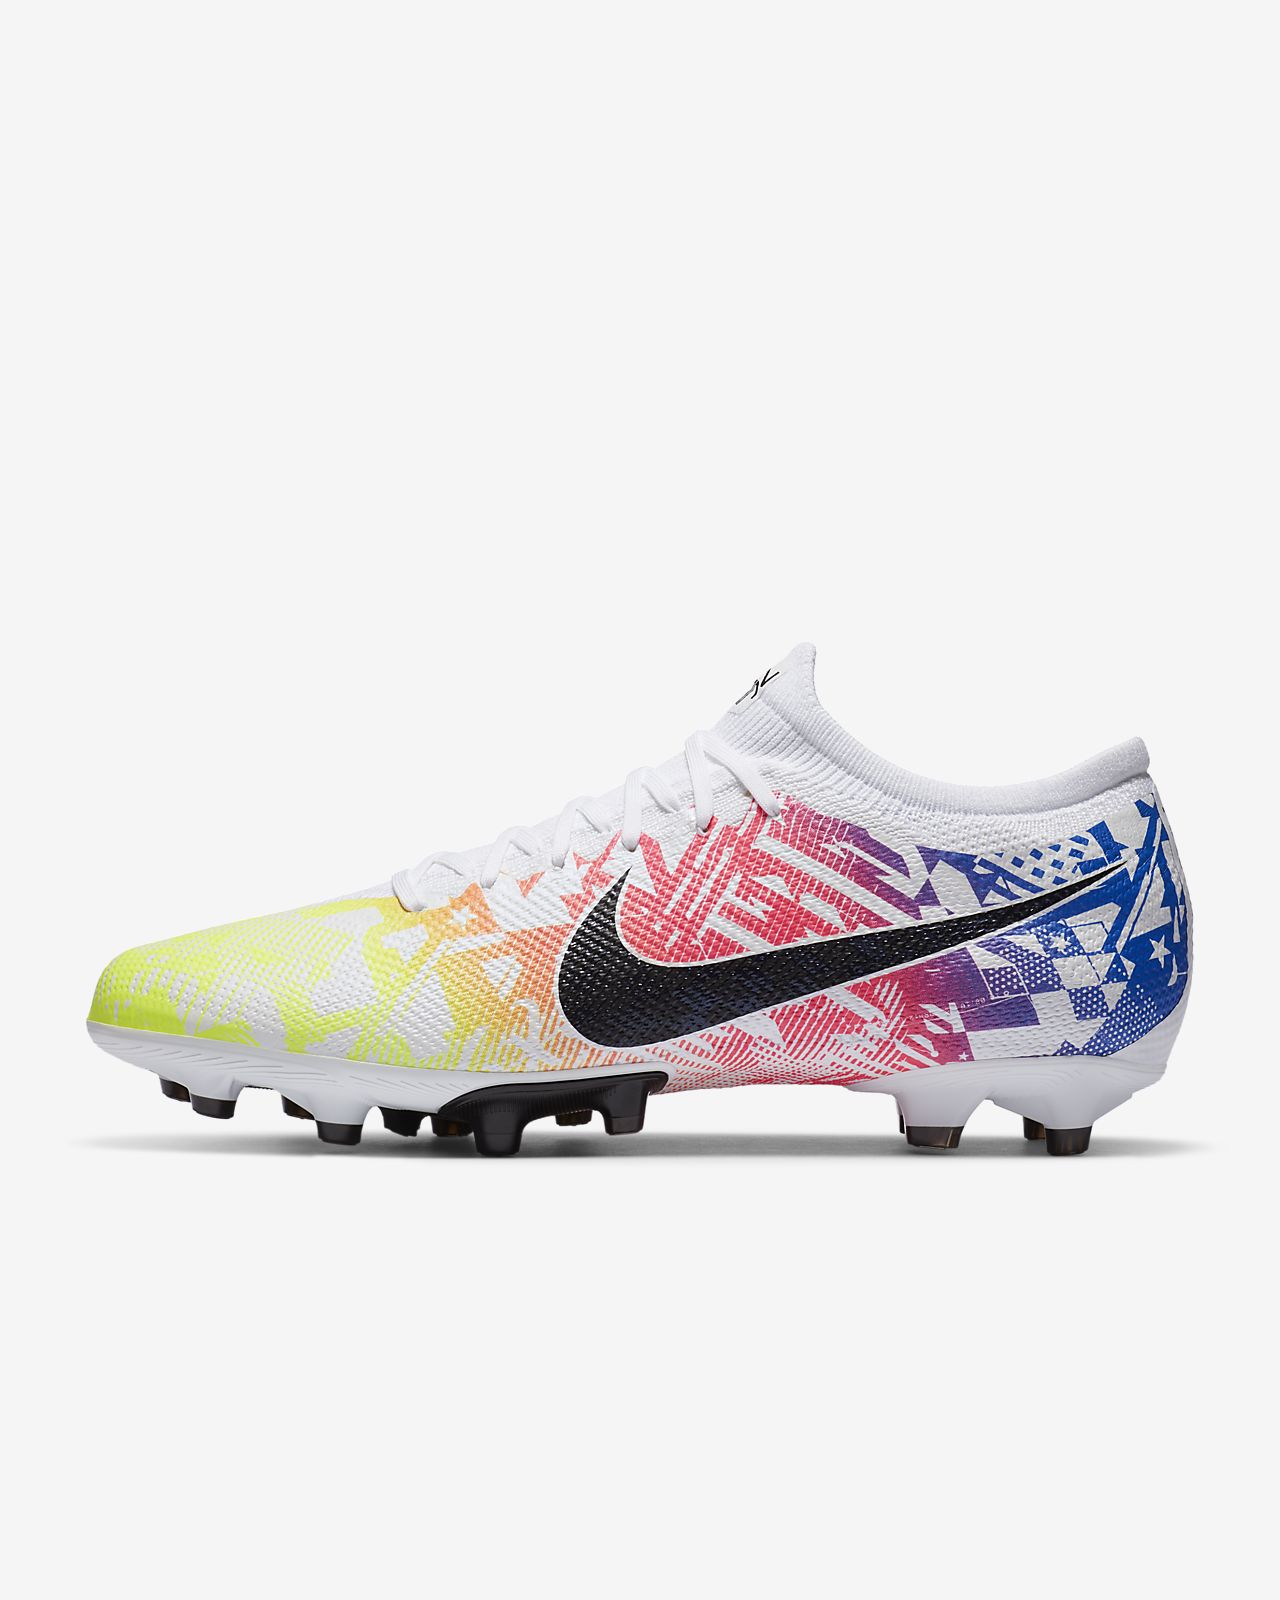 Nike Mercurial Vapor 13 Pro Neymar Jr. AG-PRO Artificial-Grass Football Boot